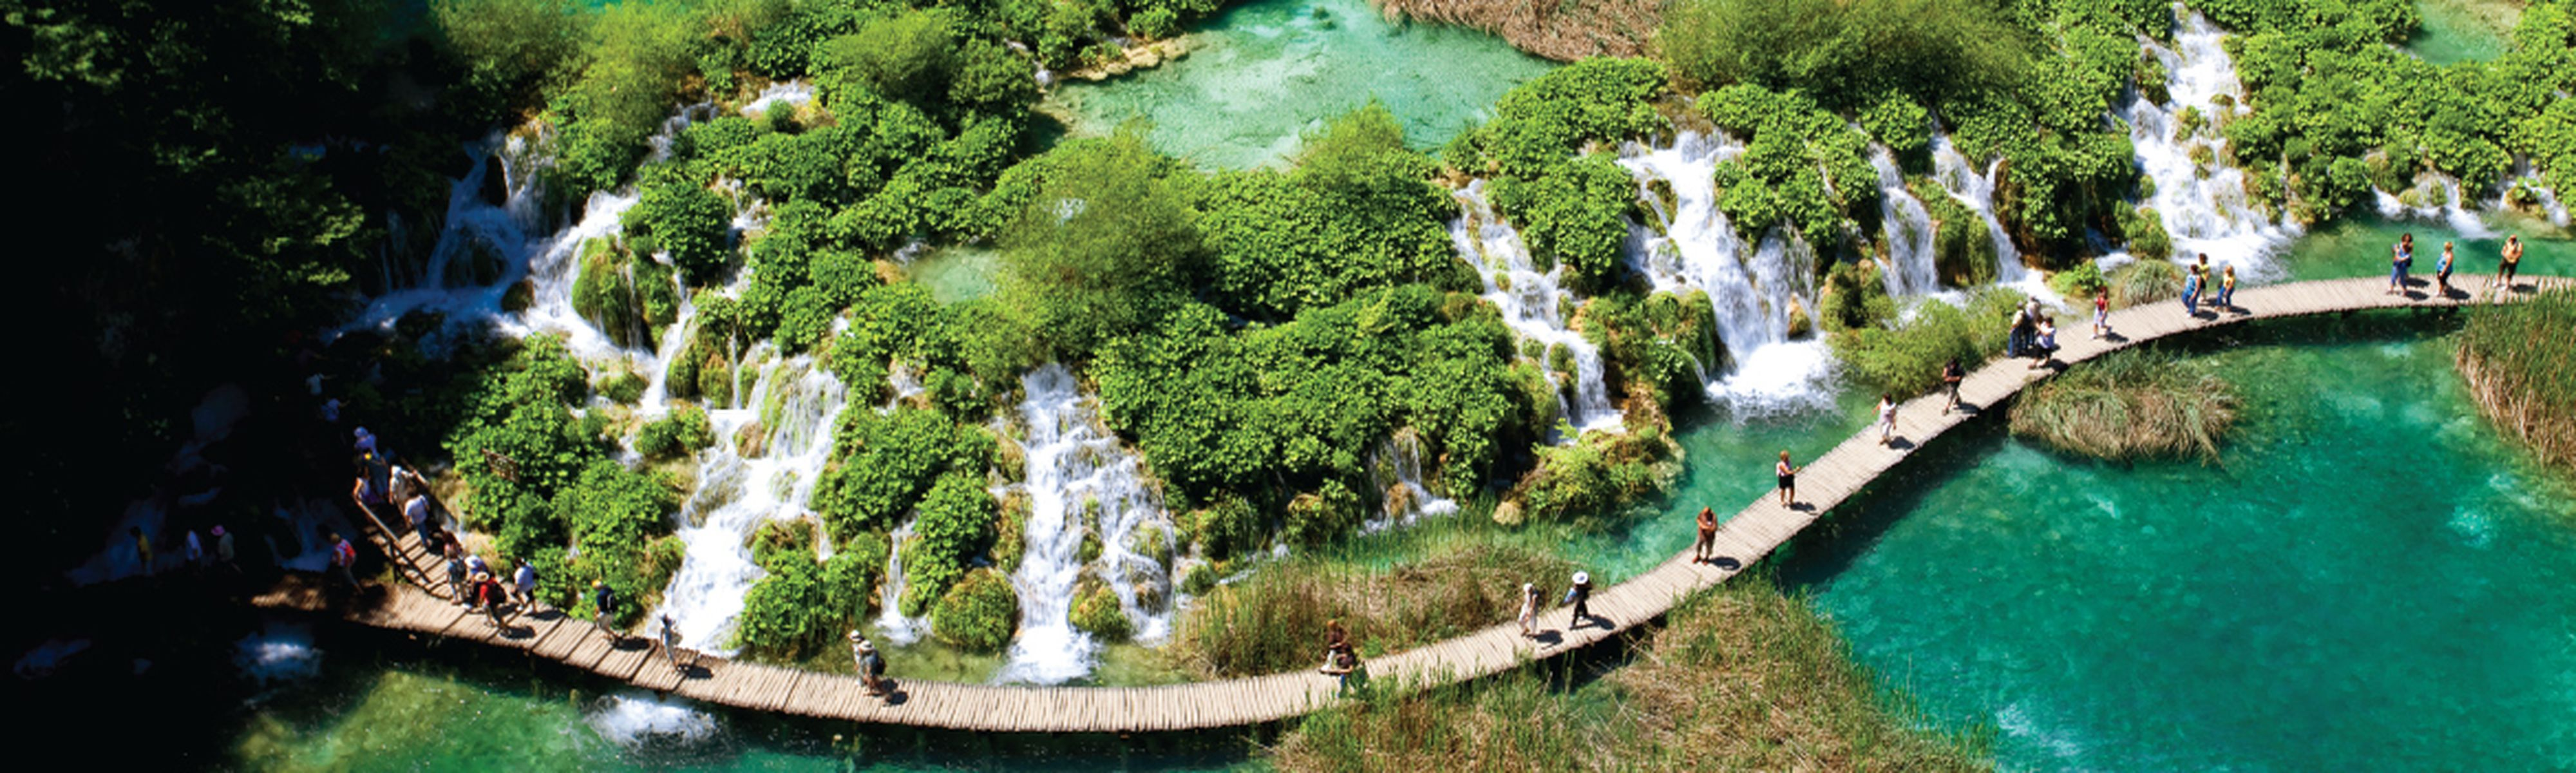 Birdseye view of tourists walking on wooden bridge in Plitvice National Park